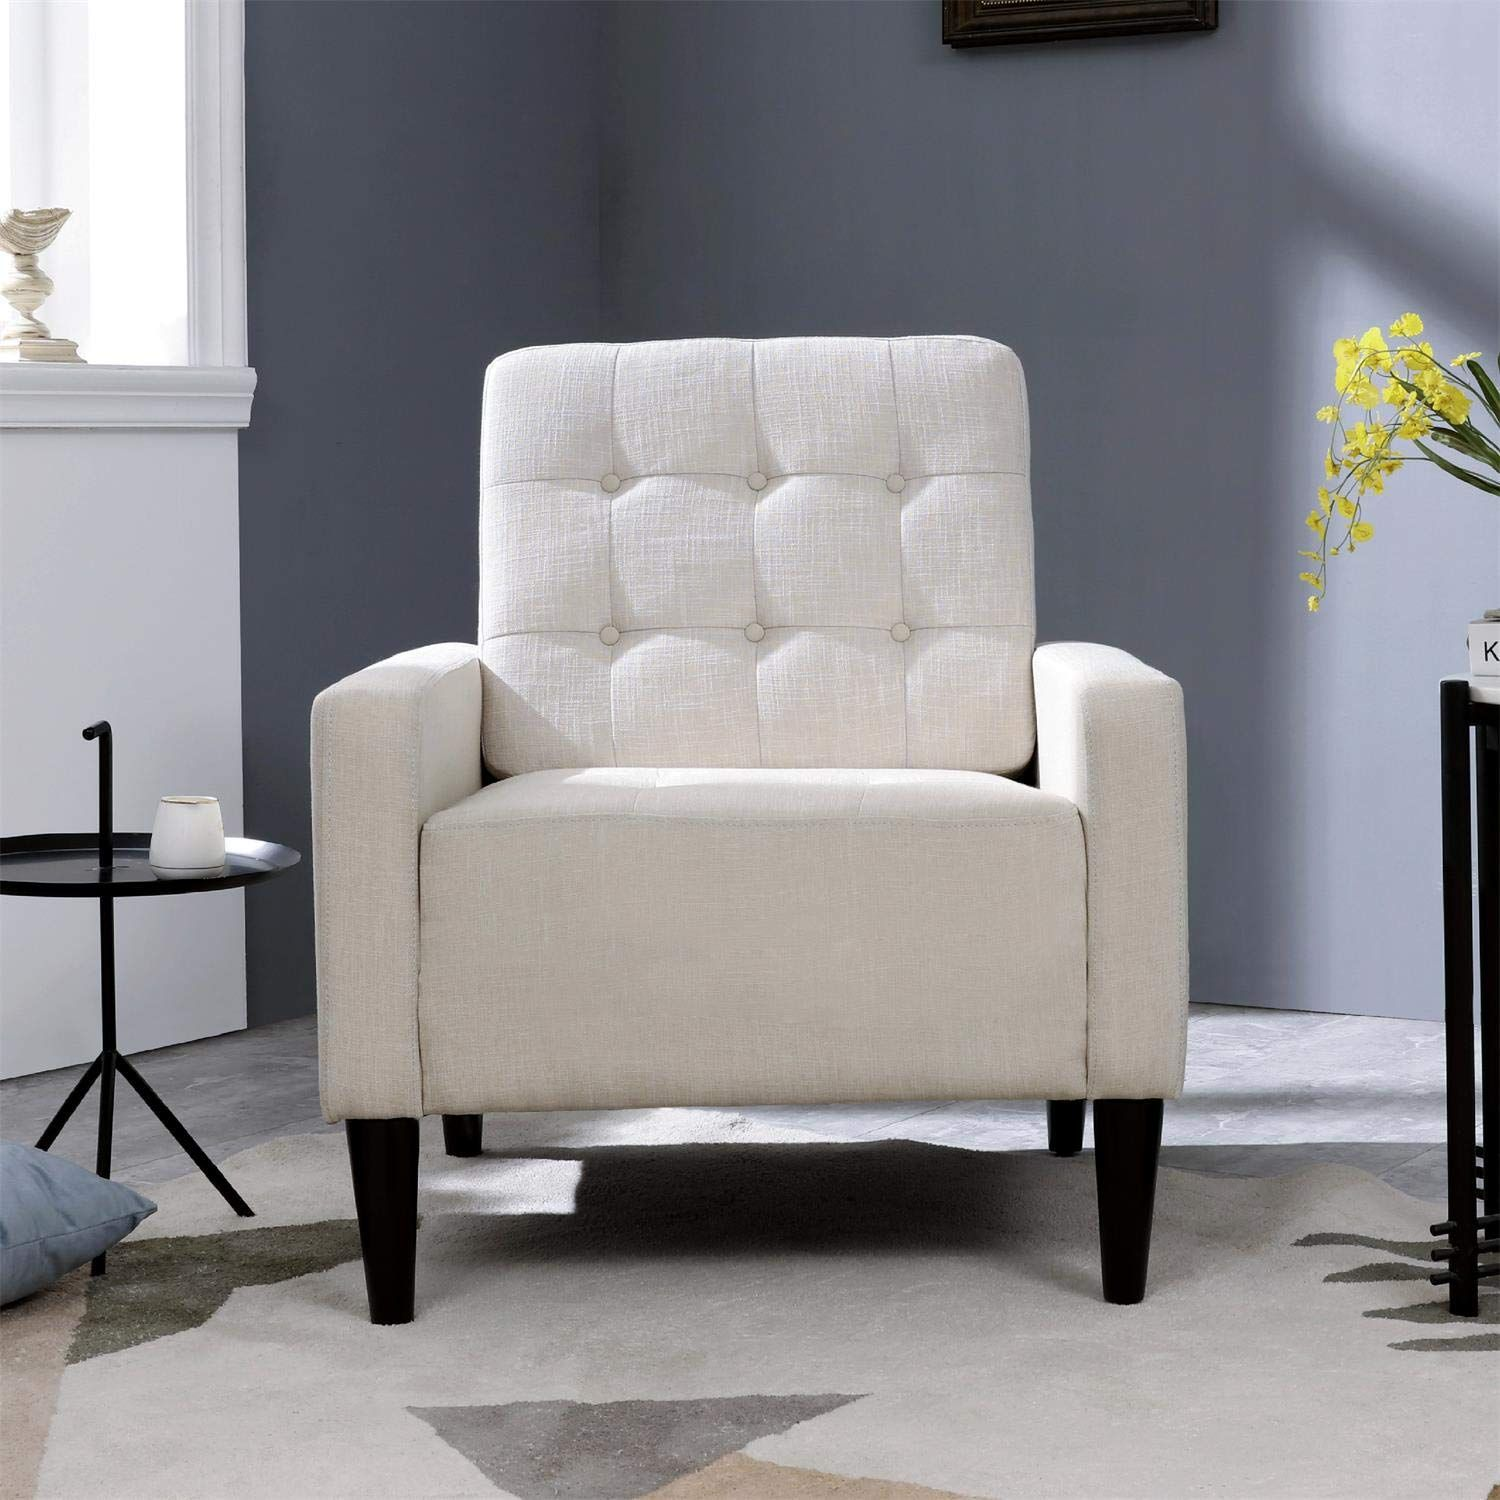 Top Space Accent Chair Living Room Chairs Arm Chair Single